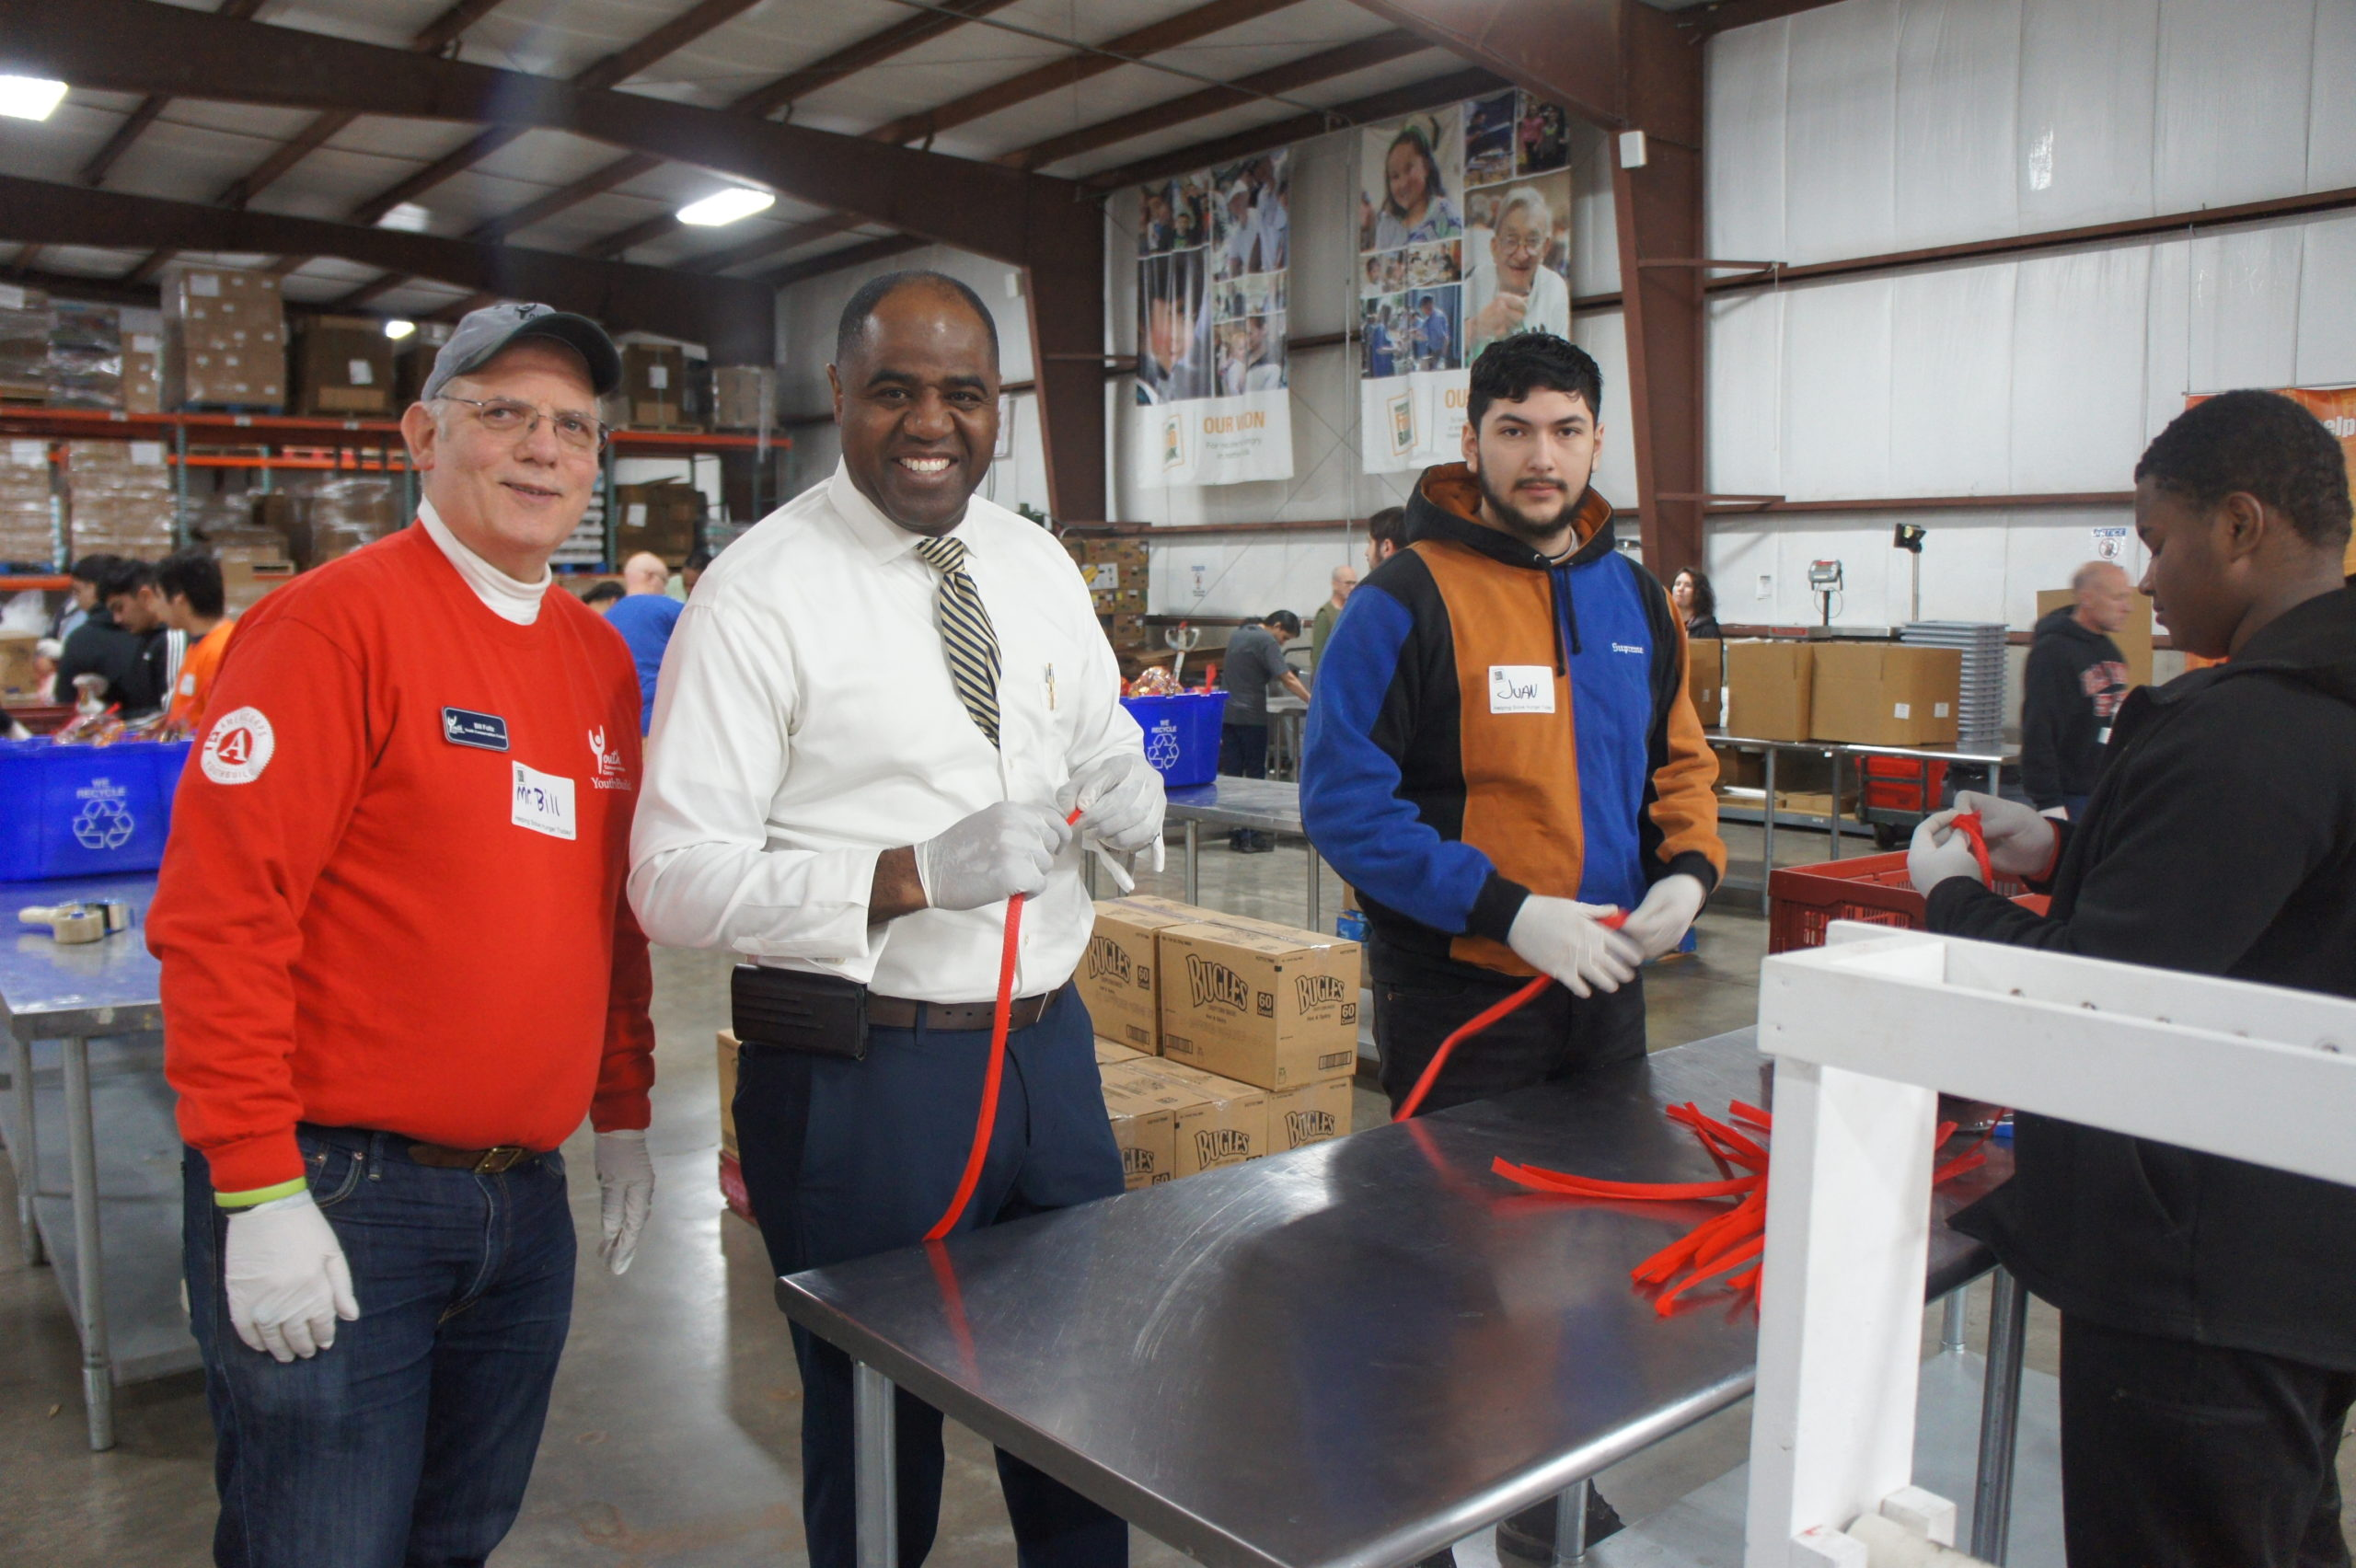 YCC Members, Staff, Waukegan Mayor Sam Cunninham Volunteer at Northern Illinois Food Bank